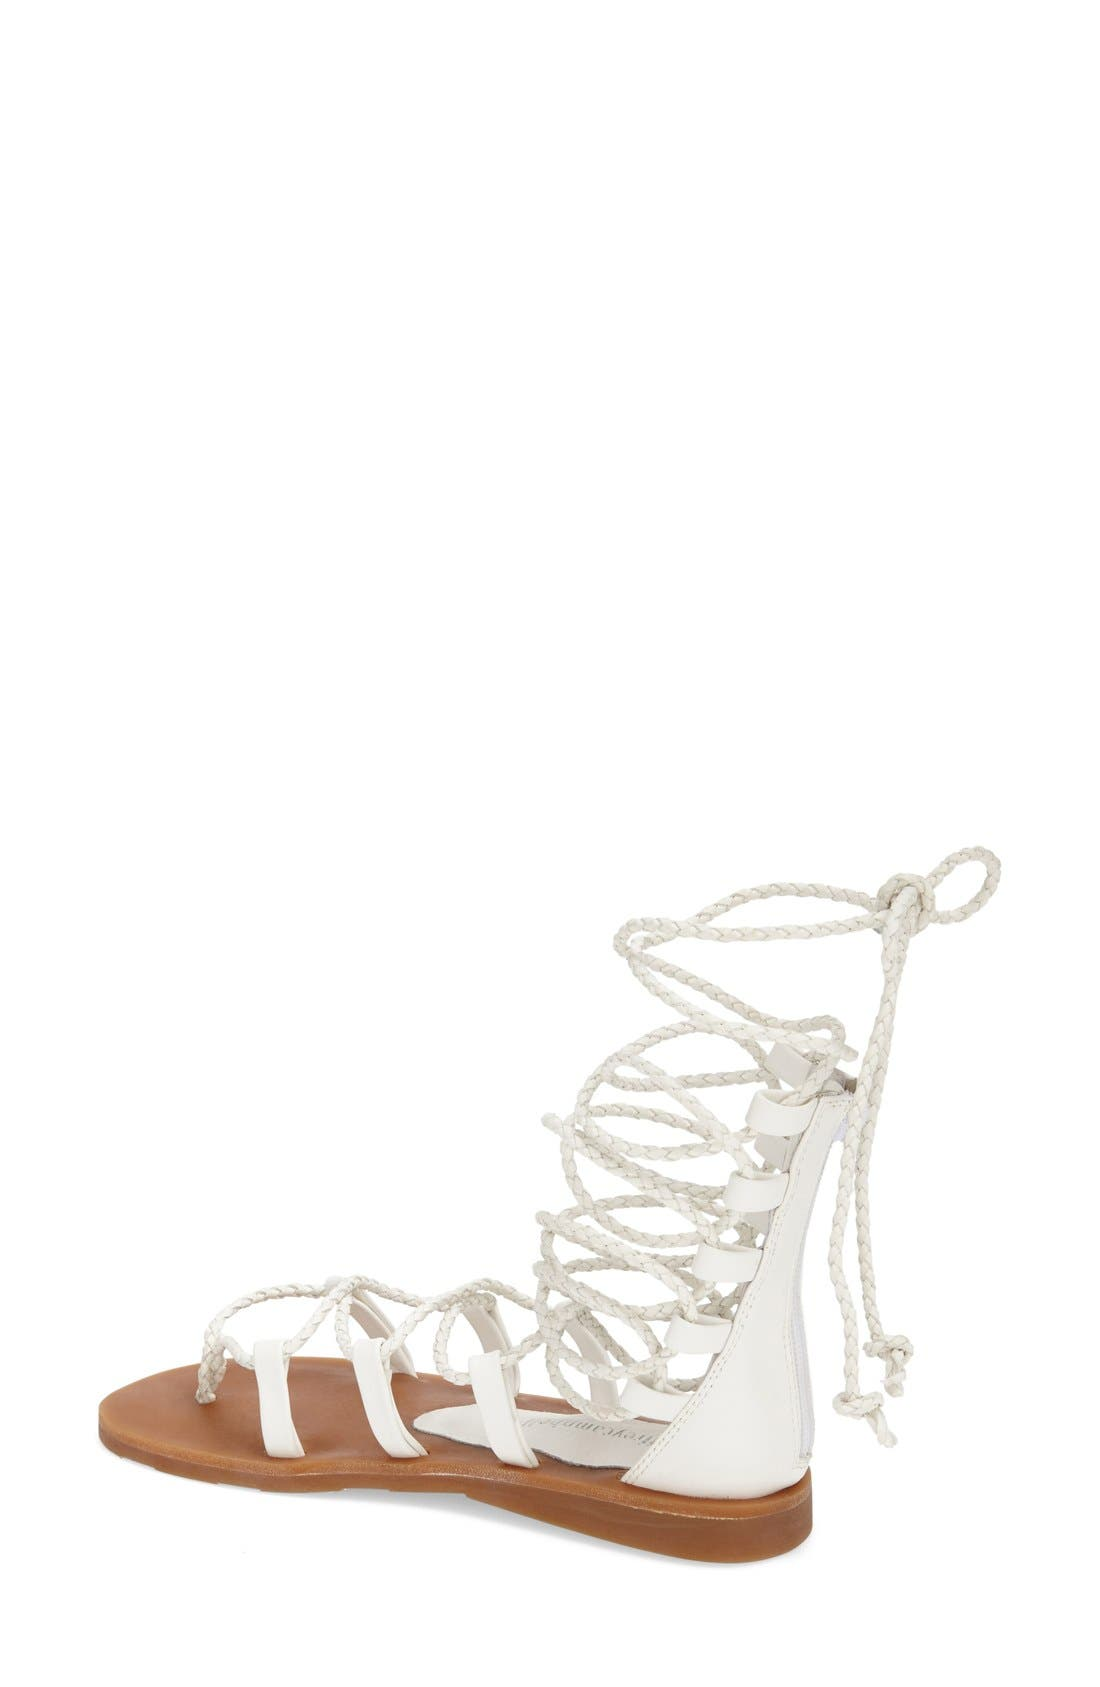 'Hola' Lace-Up Gladiator Sandal,                             Alternate thumbnail 2, color,                             White